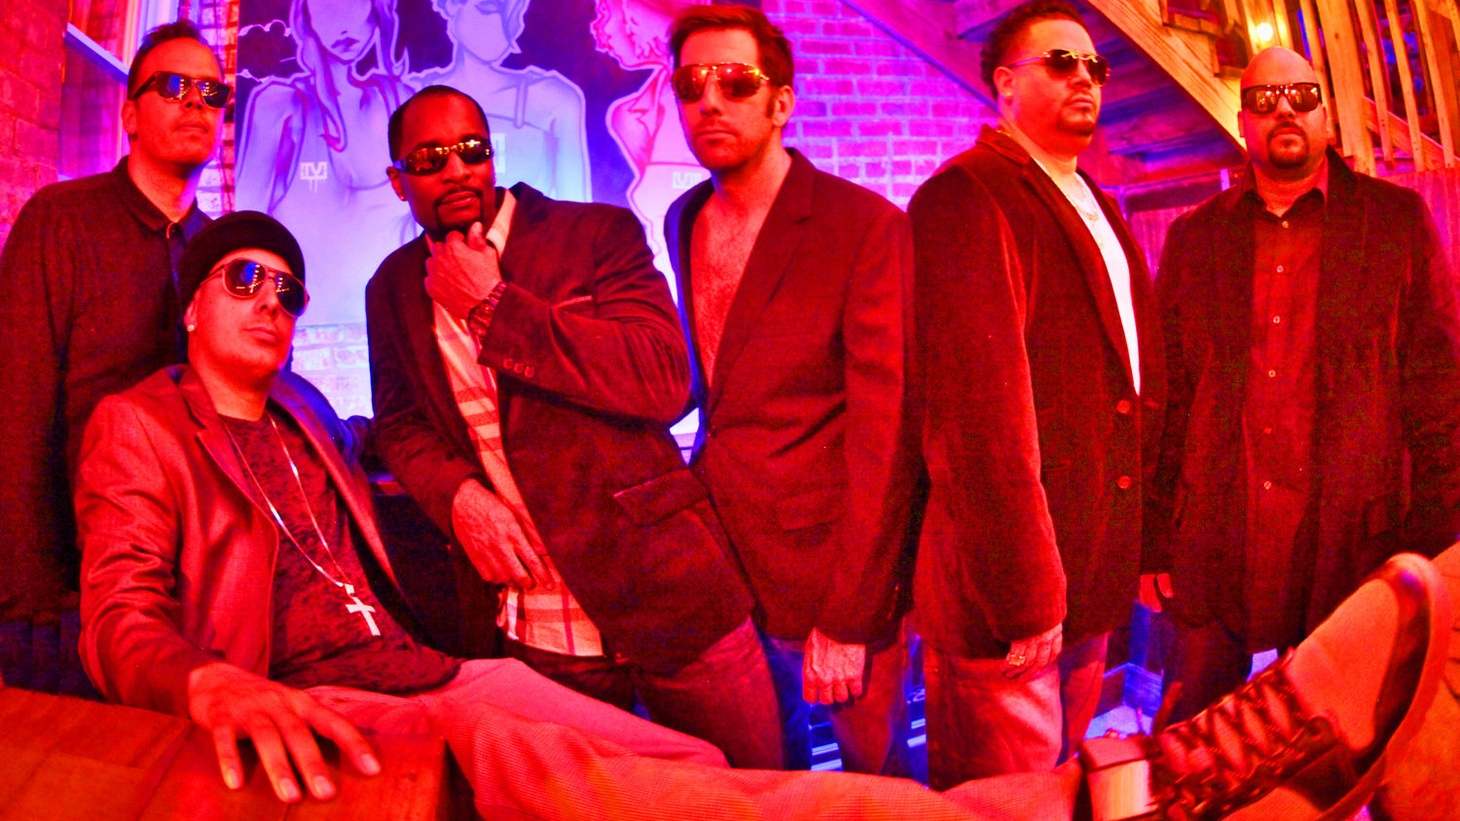 DC-based Latin-flavored party band Empresarios return with another dose of dance-floor ready world-beat jams on their new album, The Vibes. As in the past, this seven-piece musical machine pumps out track after track of an organic mix of reggae and salsa, set to a dubby beat and some slick Spanish rhymin'.